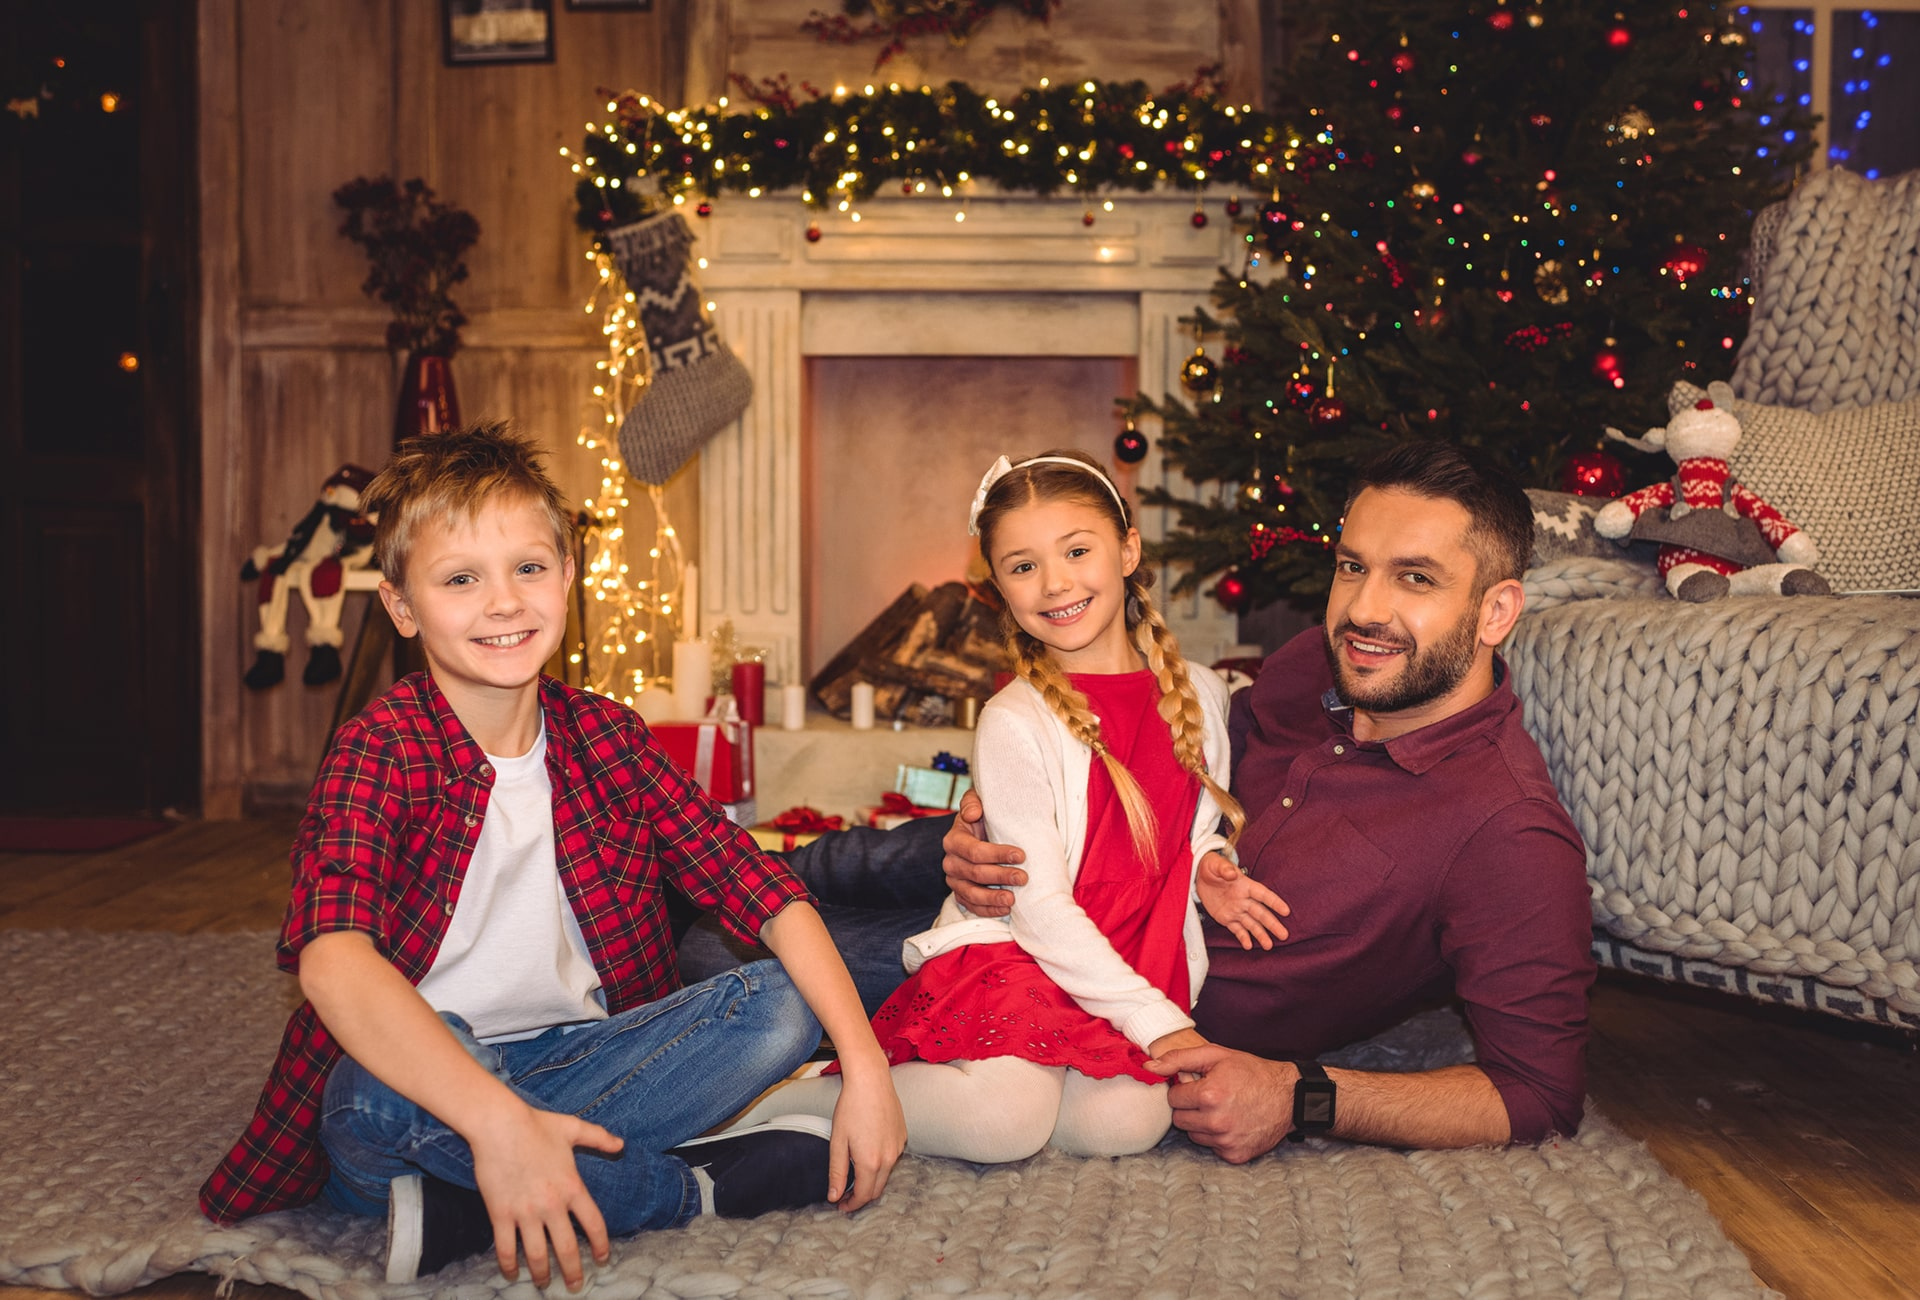 Divorced father with children at the holidays